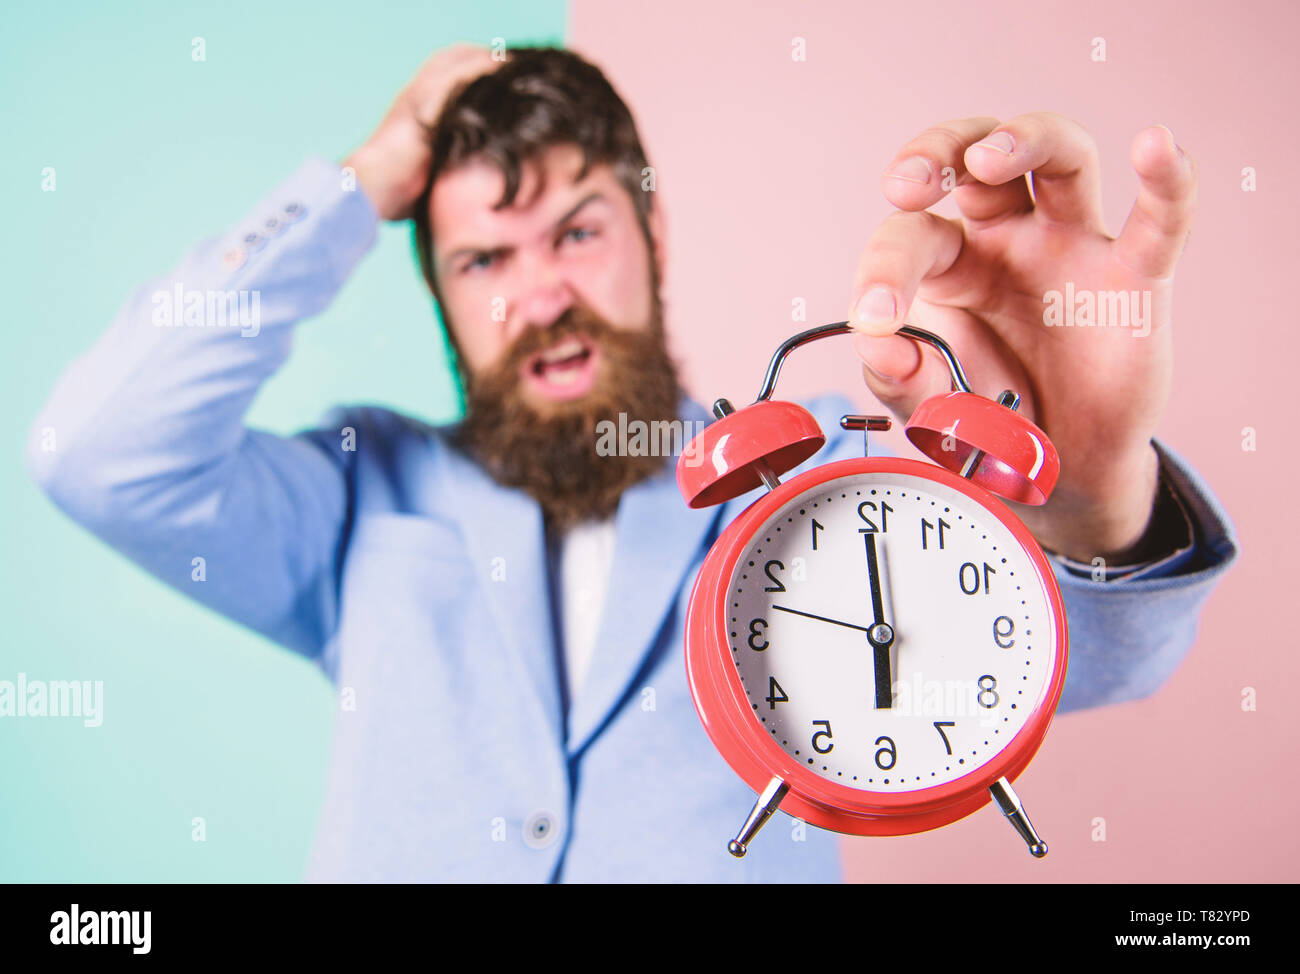 Time management skills. How much time left till deadline. Time to work. Man bearded stressful businessman hold clock. Stress concept. Hipster stressful working schedule. Businessman has lack of time. - Stock Image